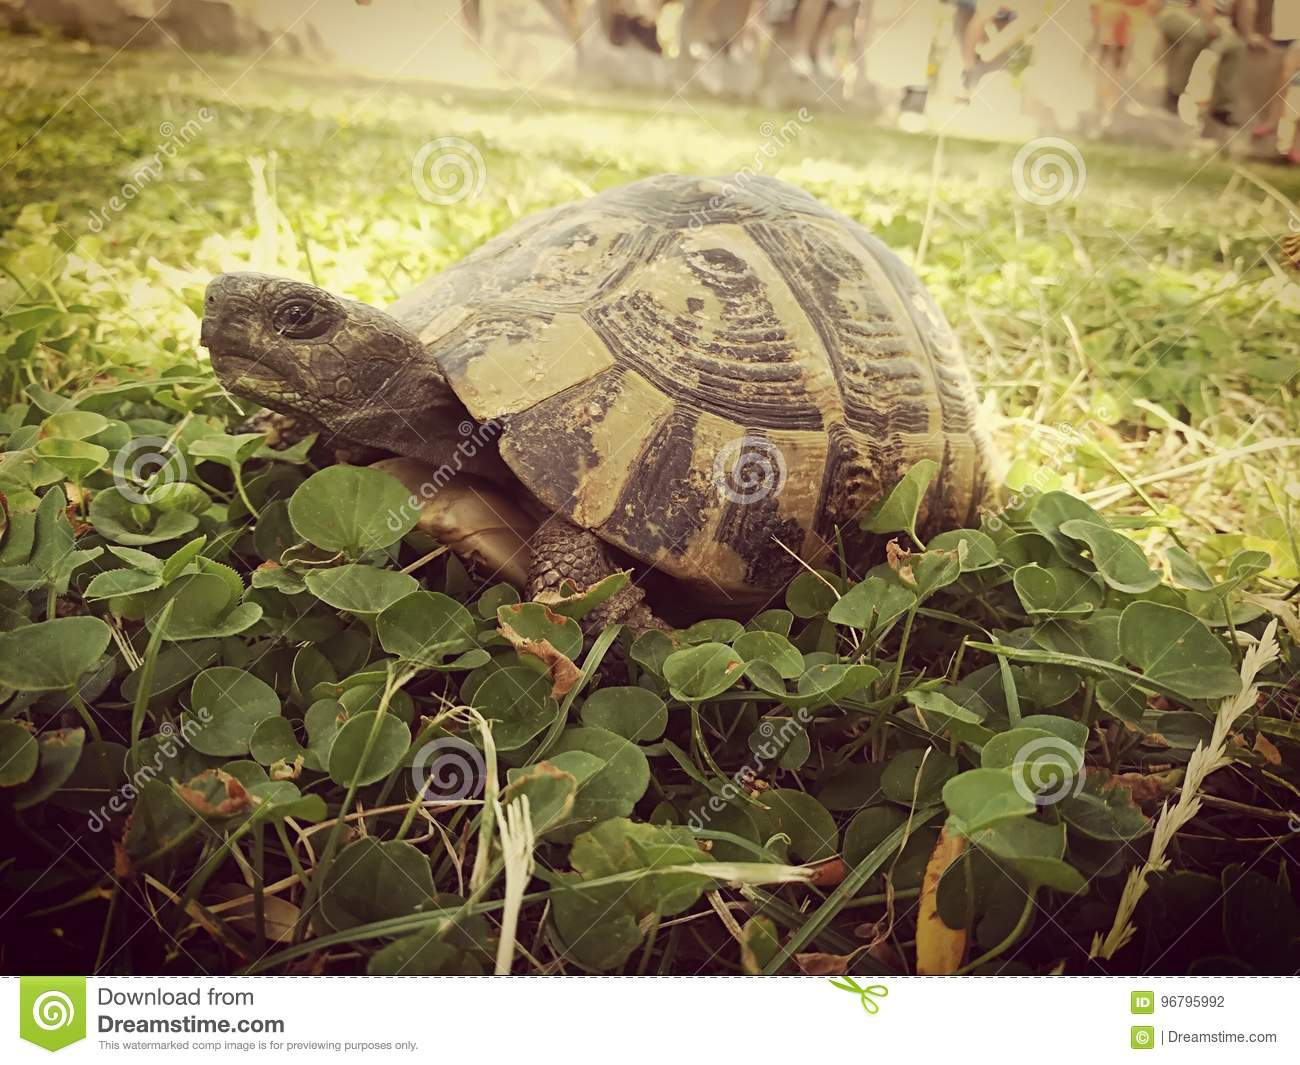 Tortoise in the clover